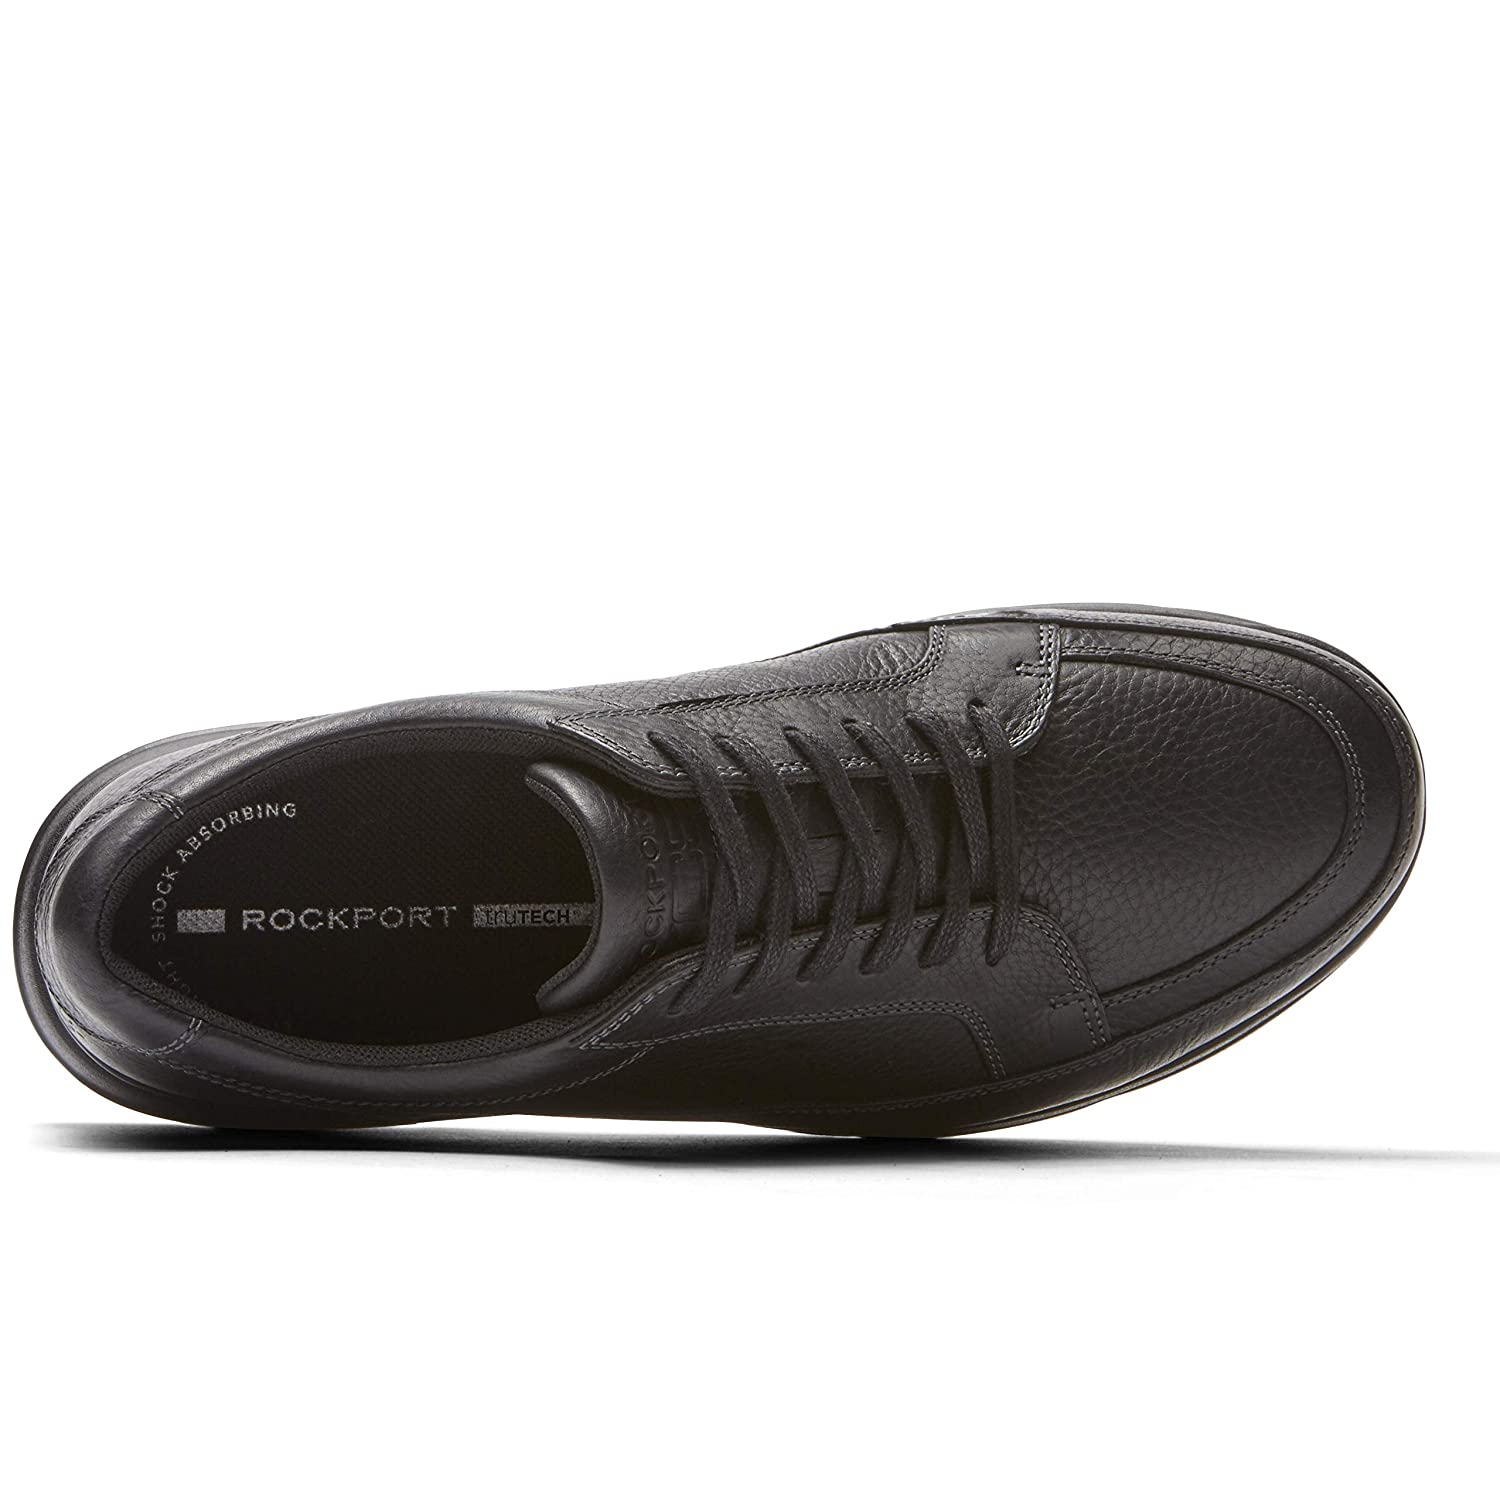 Rockport Play Toe Lace City Two To Men's trCoshdBQx